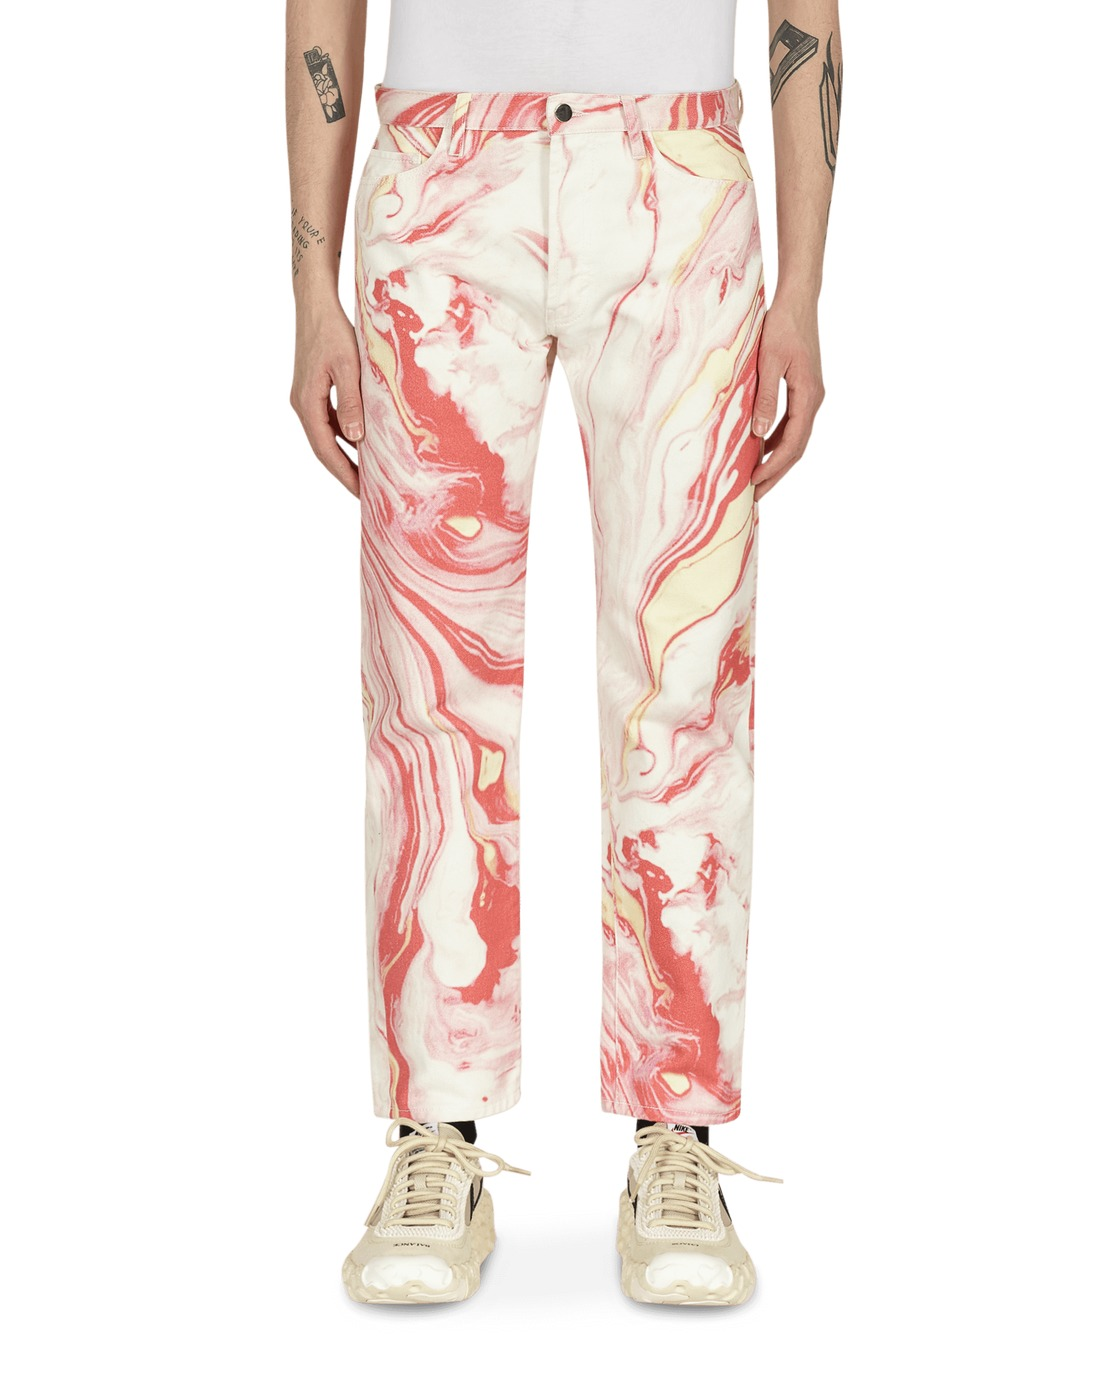 Aries Marble Lilly Jeans Pink